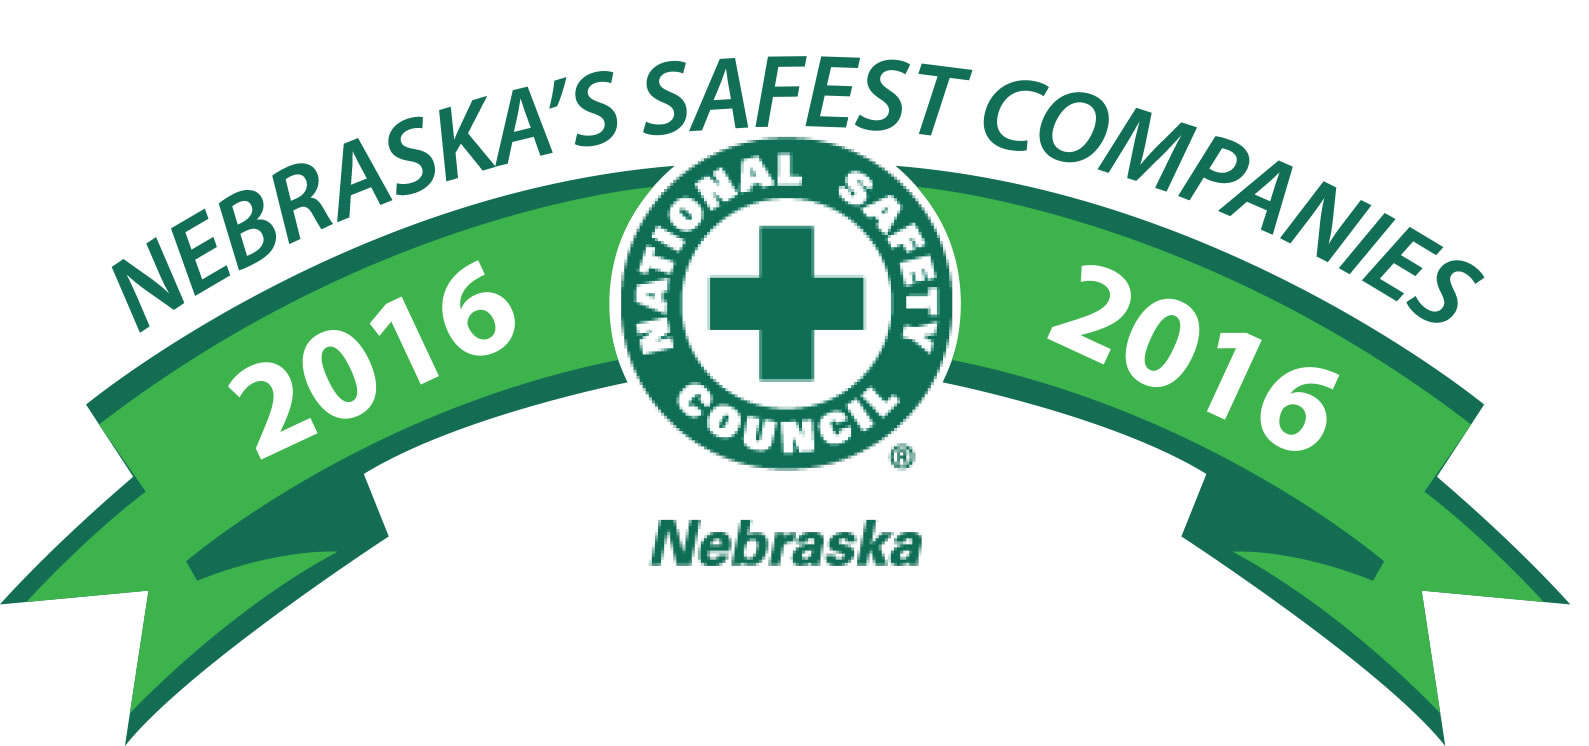 National Safety Council - Nebraska's Safest Companies - 2016